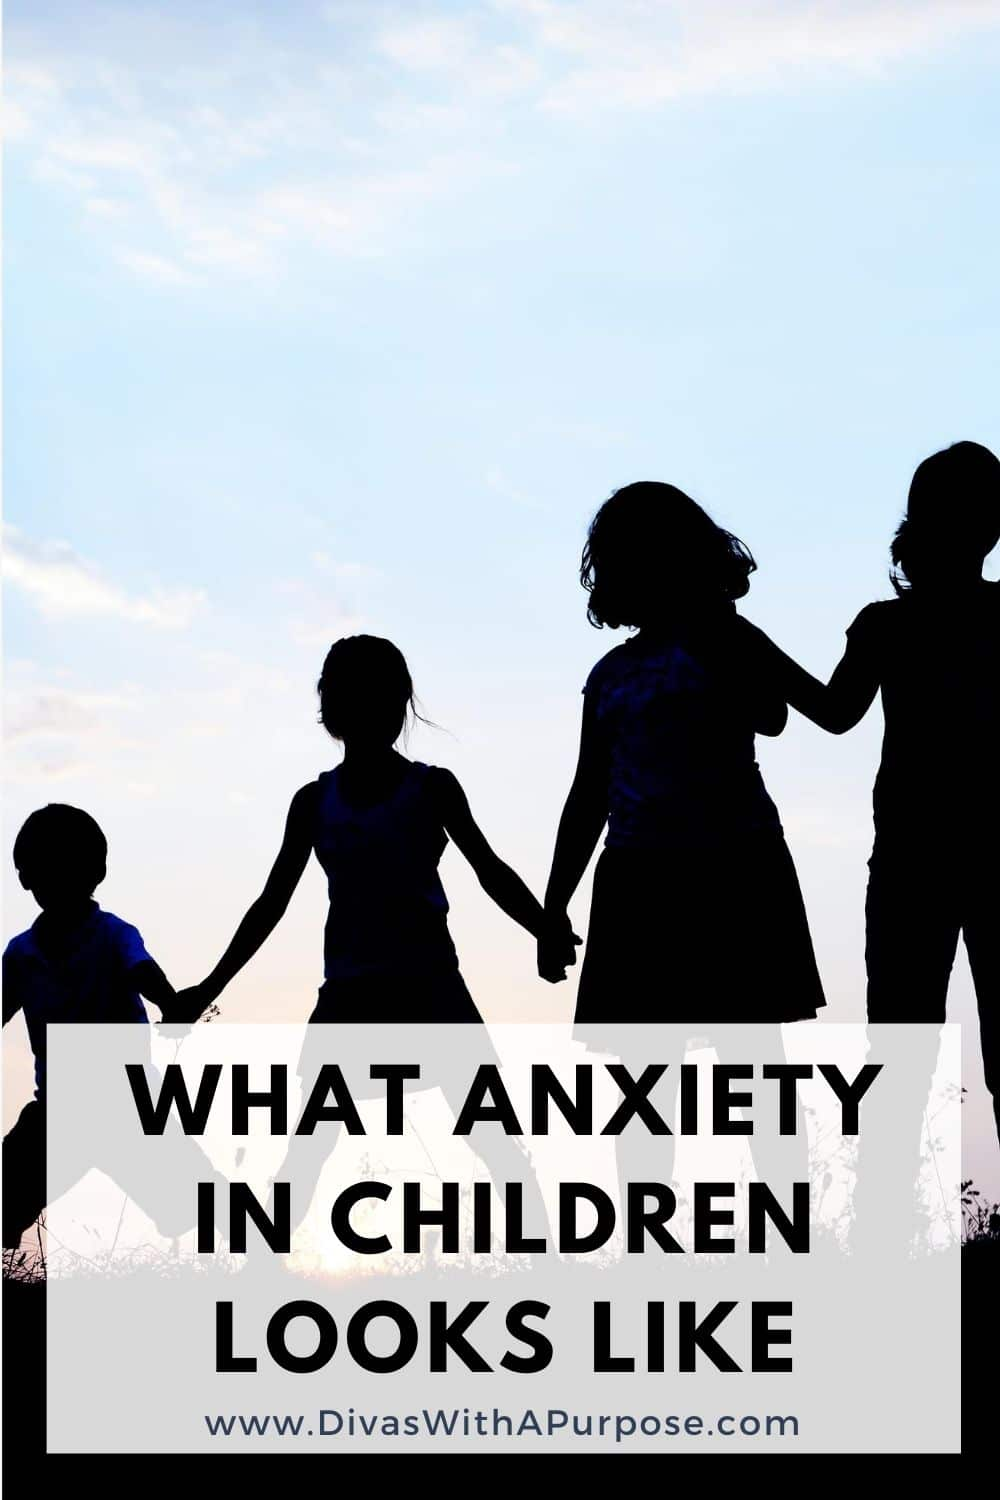 Anxiety in children can show up in different ways for different reasons. It is important to recognize and address their symptoms as early as possible.